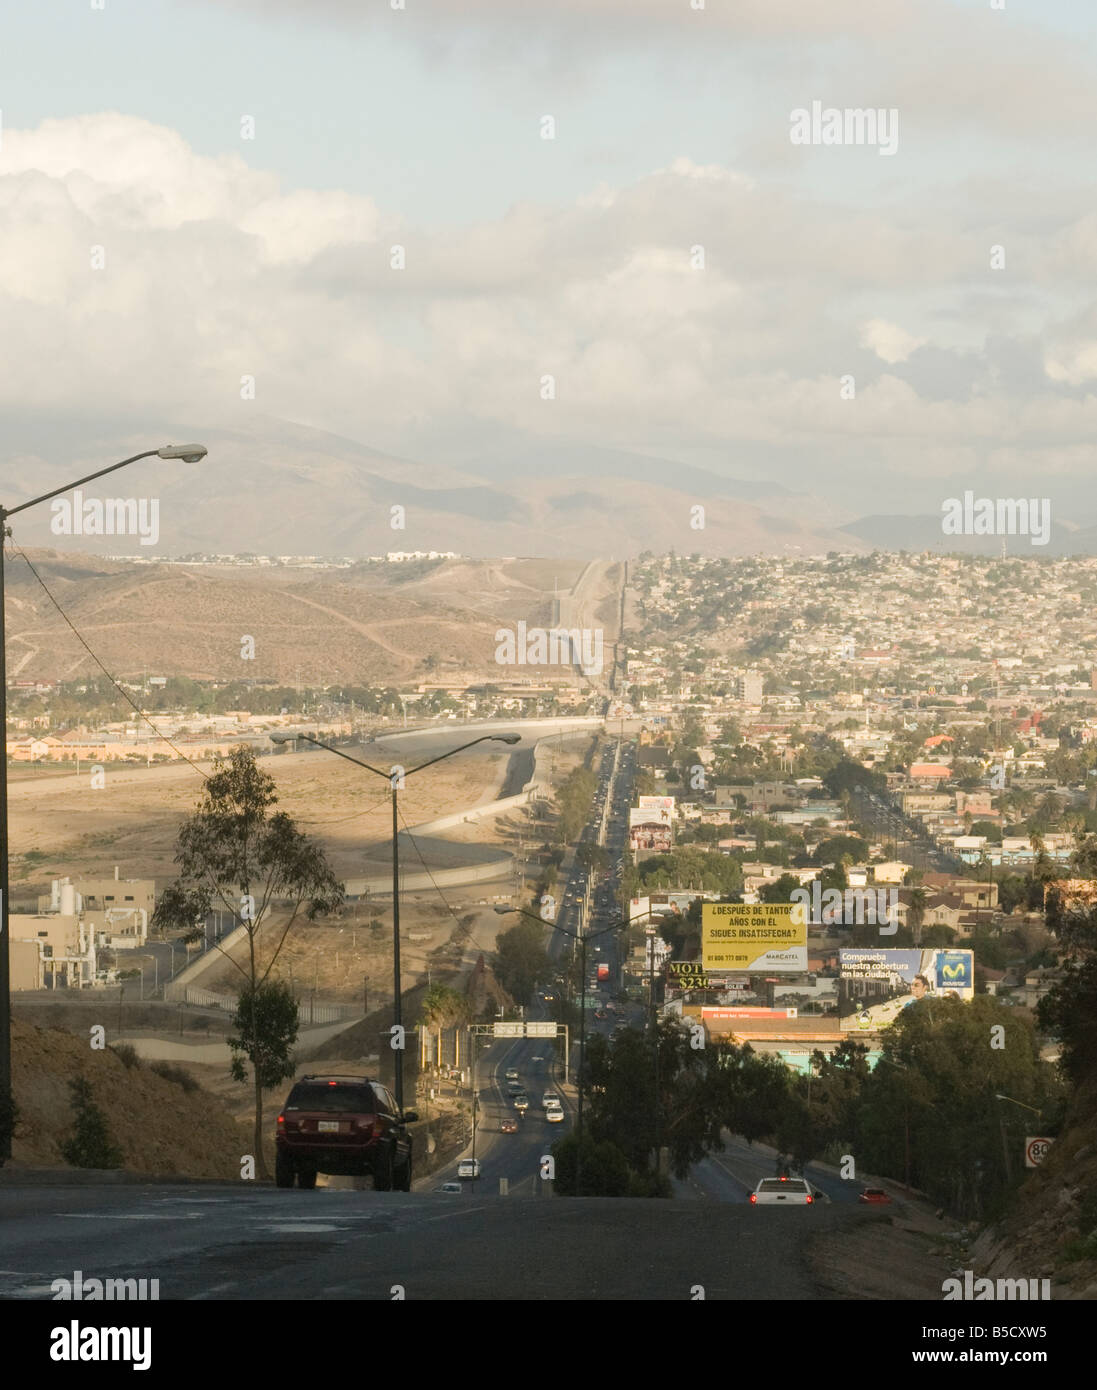 View of the US Mexico border fence from a road in Tijuana Mexico - Stock Image